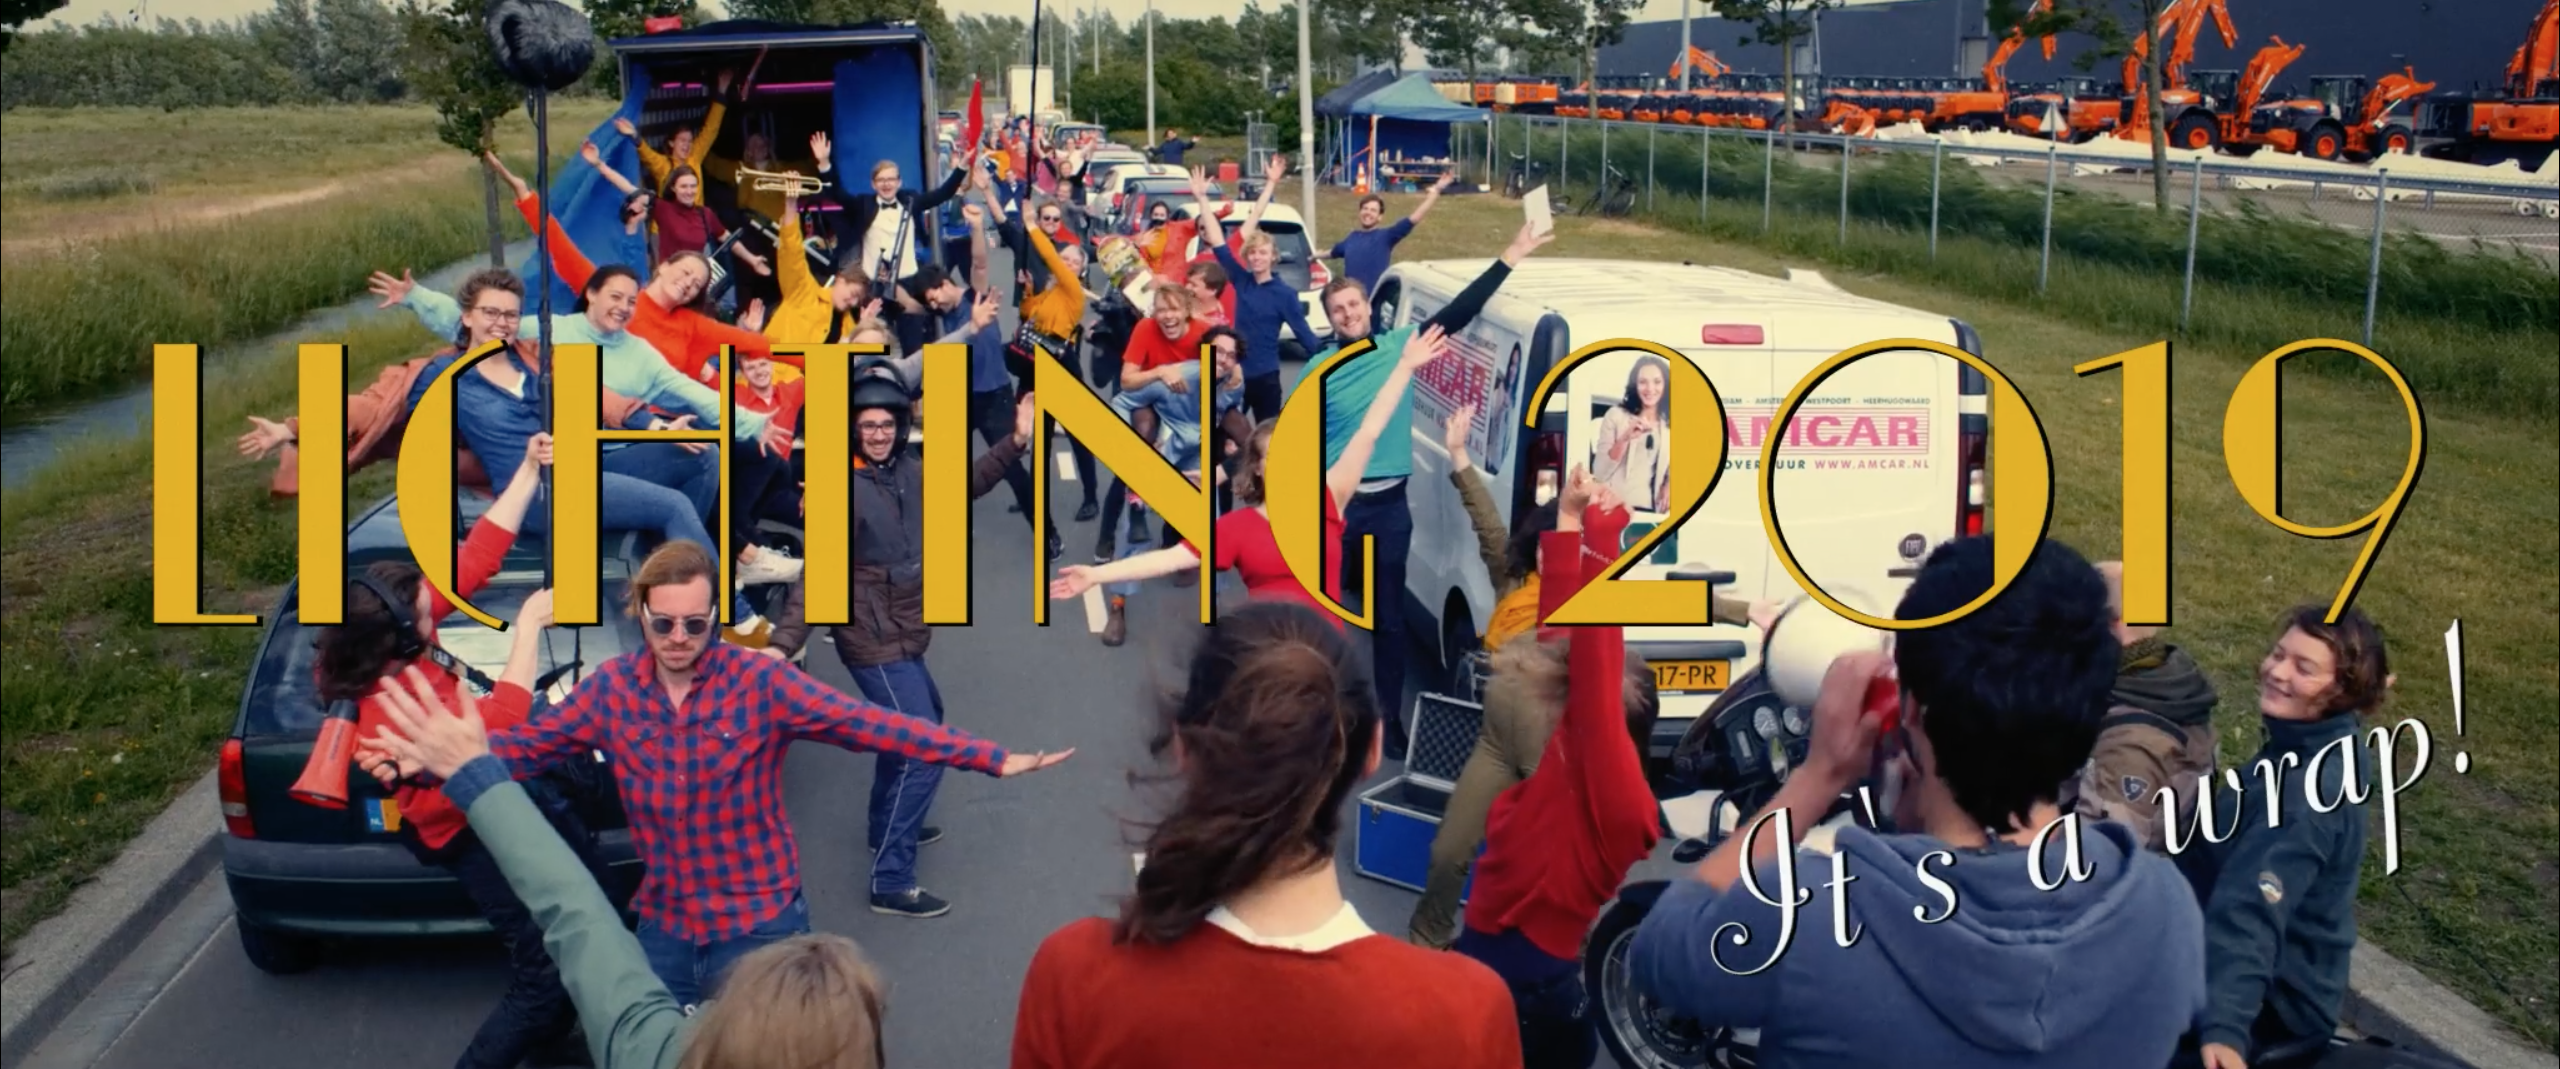 Still from the promo film Nieuwe Dag Op Set. It's a wide shot of a road filled with people and cars. There's a big title that says